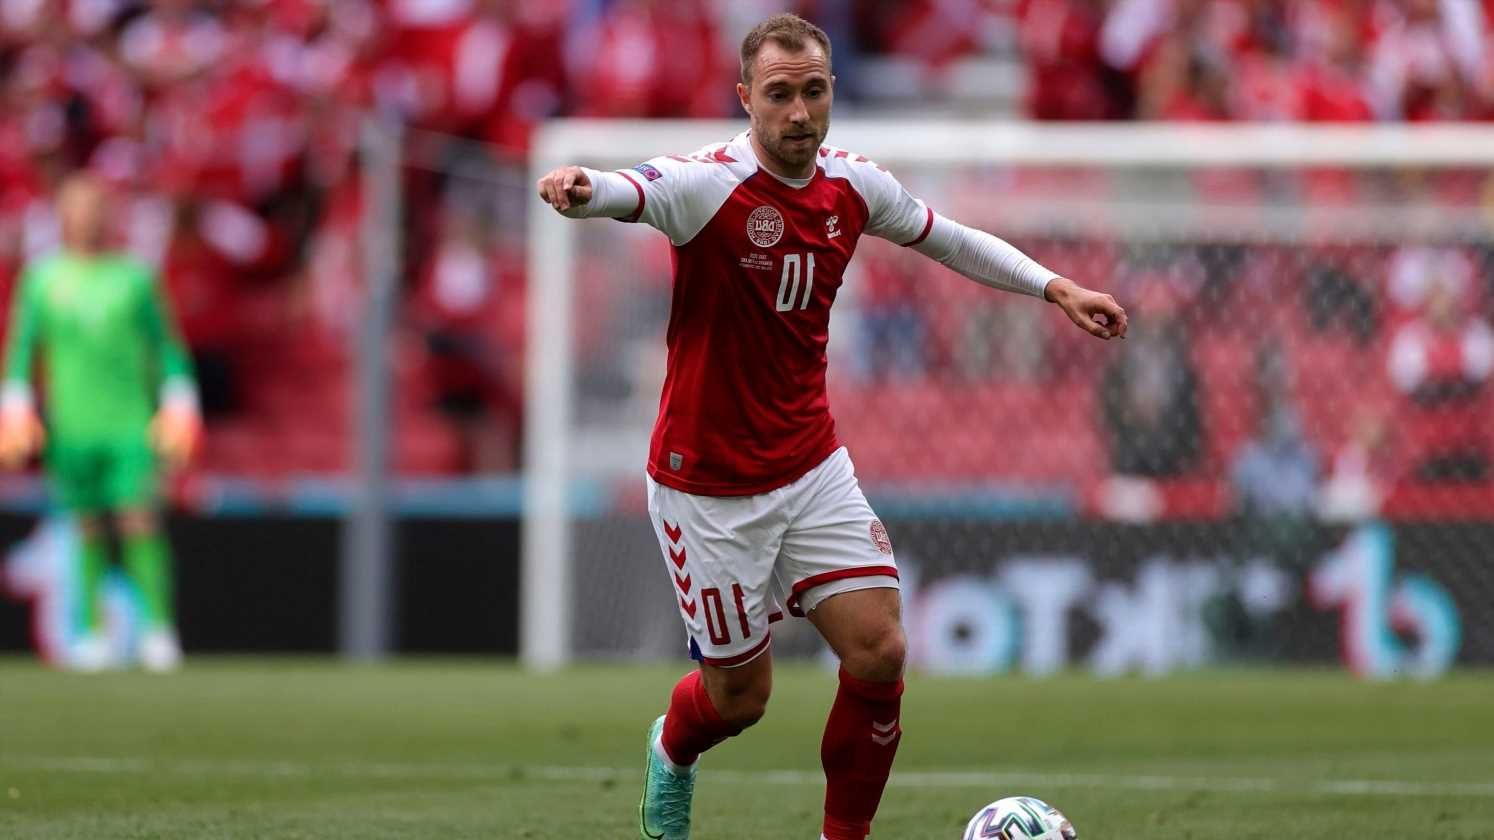 Denmark's Christian Eriksen to be fitted with heart starter after collapse